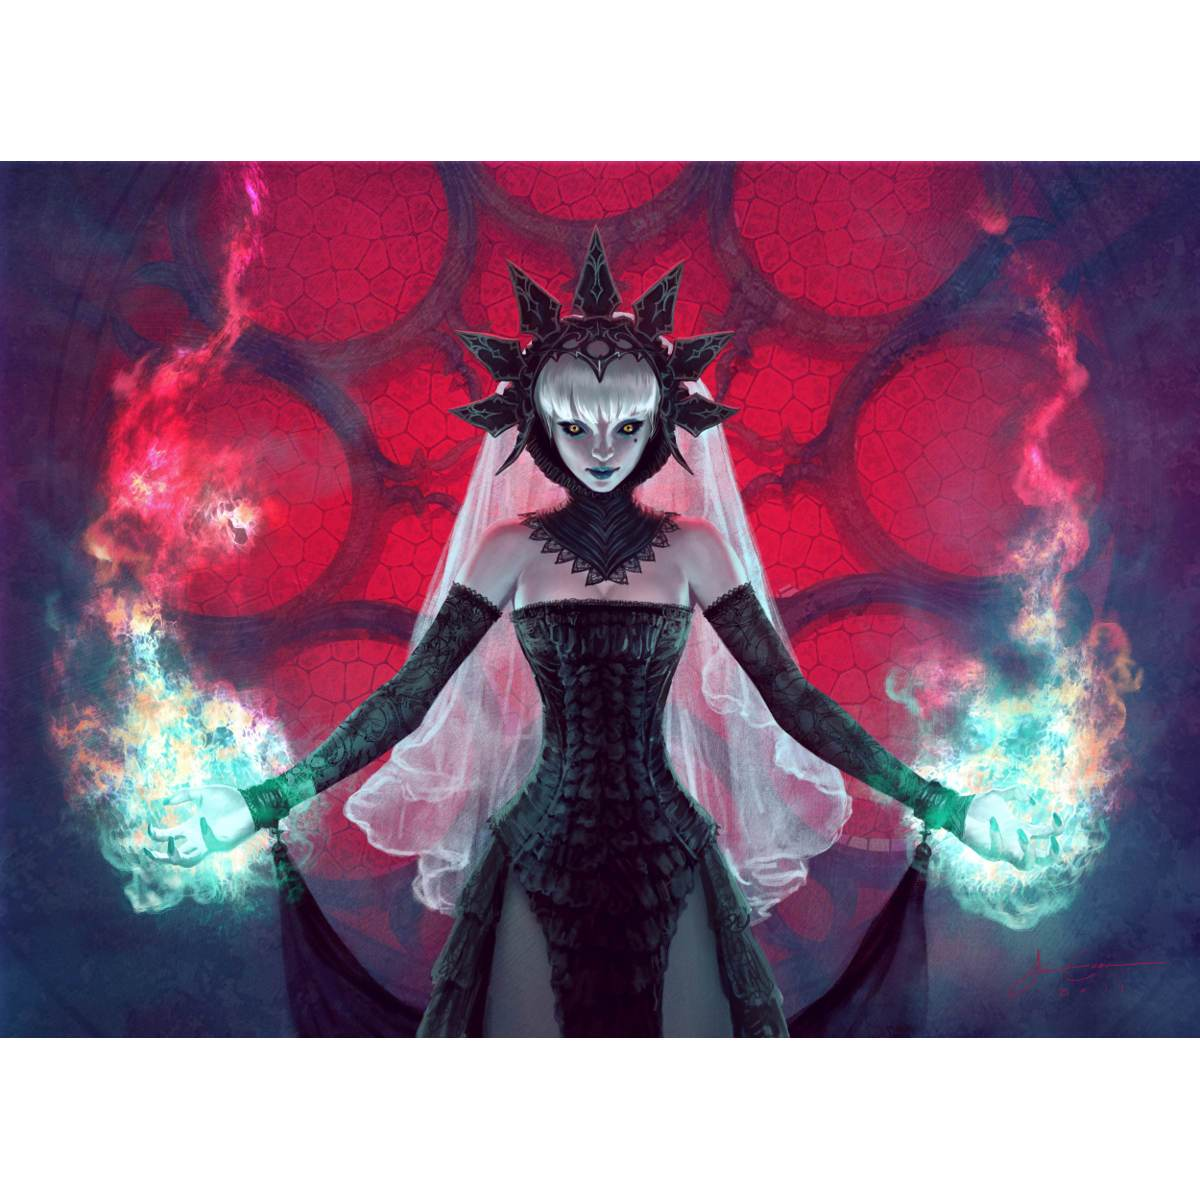 Fires of Undeath Print - Print - Original Magic Art - Accessories for Magic the Gathering and other card games